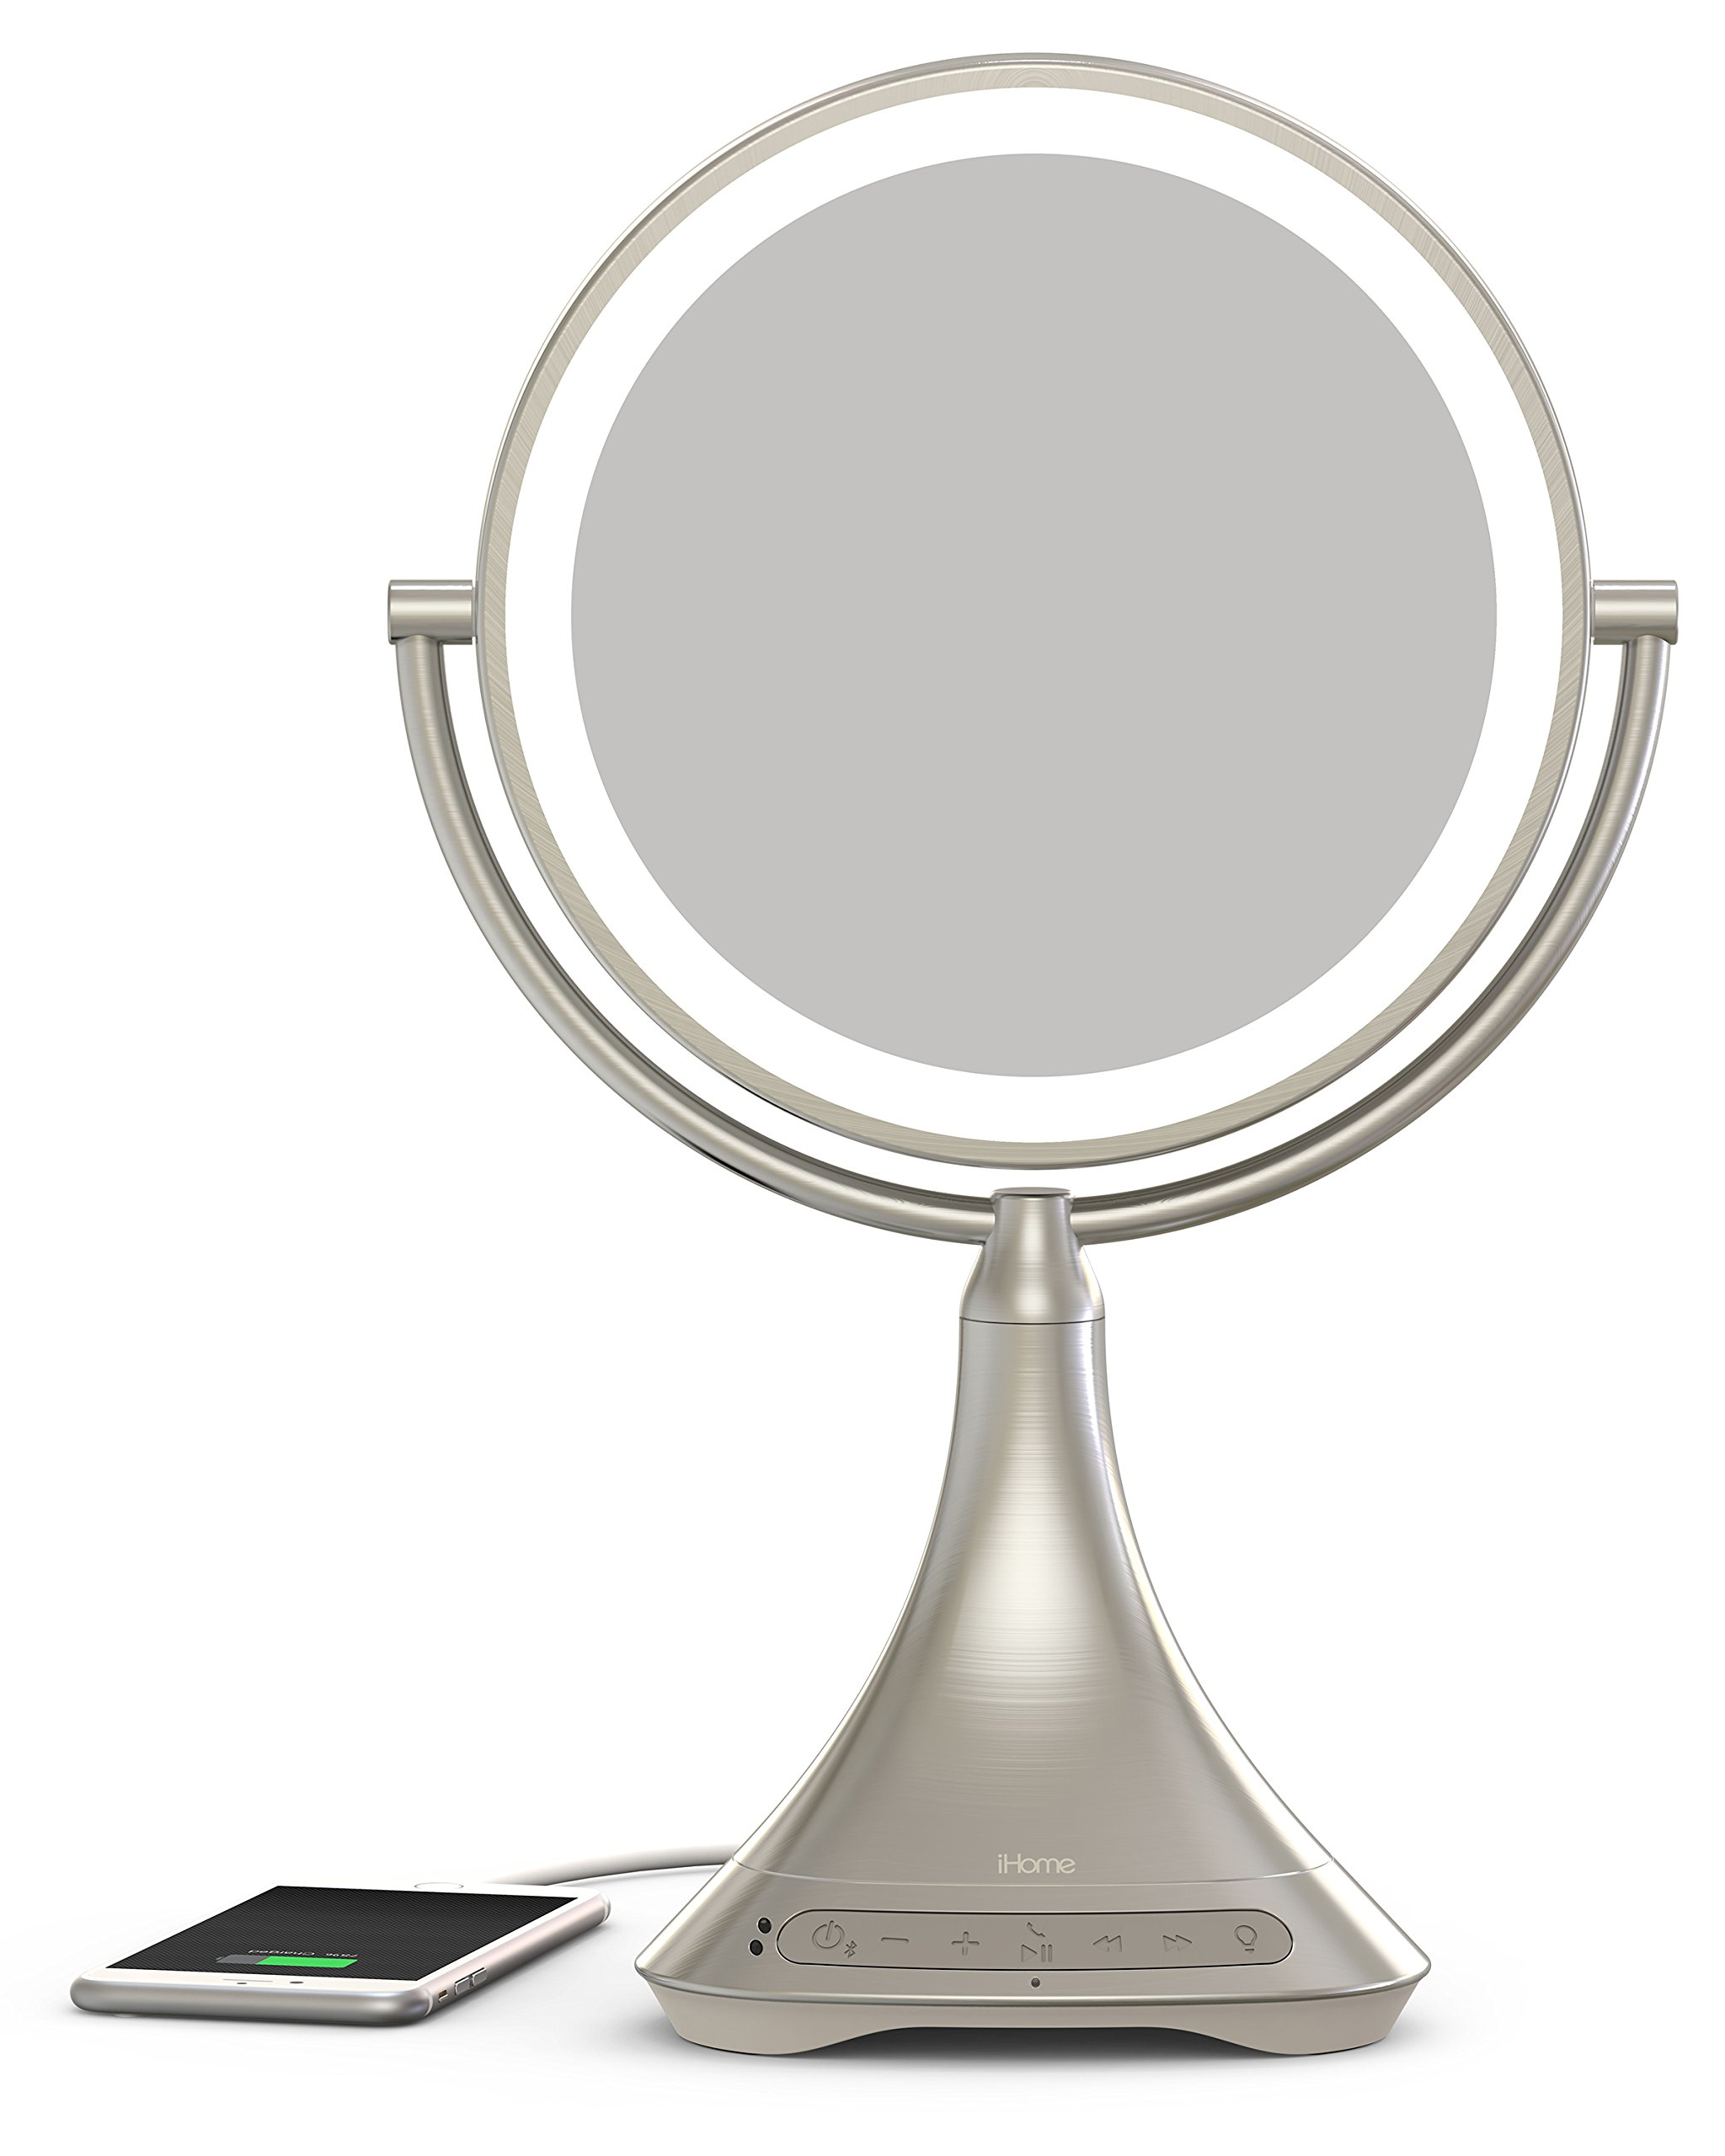 iHome All-in-One, 7X Magnify, 9'' 2-Sided LED Makeup Mirror, Bright LED Light Up Mirror, Natural Light, Double-Sided Vanity Mirror, Hands-Free Speakerphone, Bluetooth Audio & Phone Charger by iHome